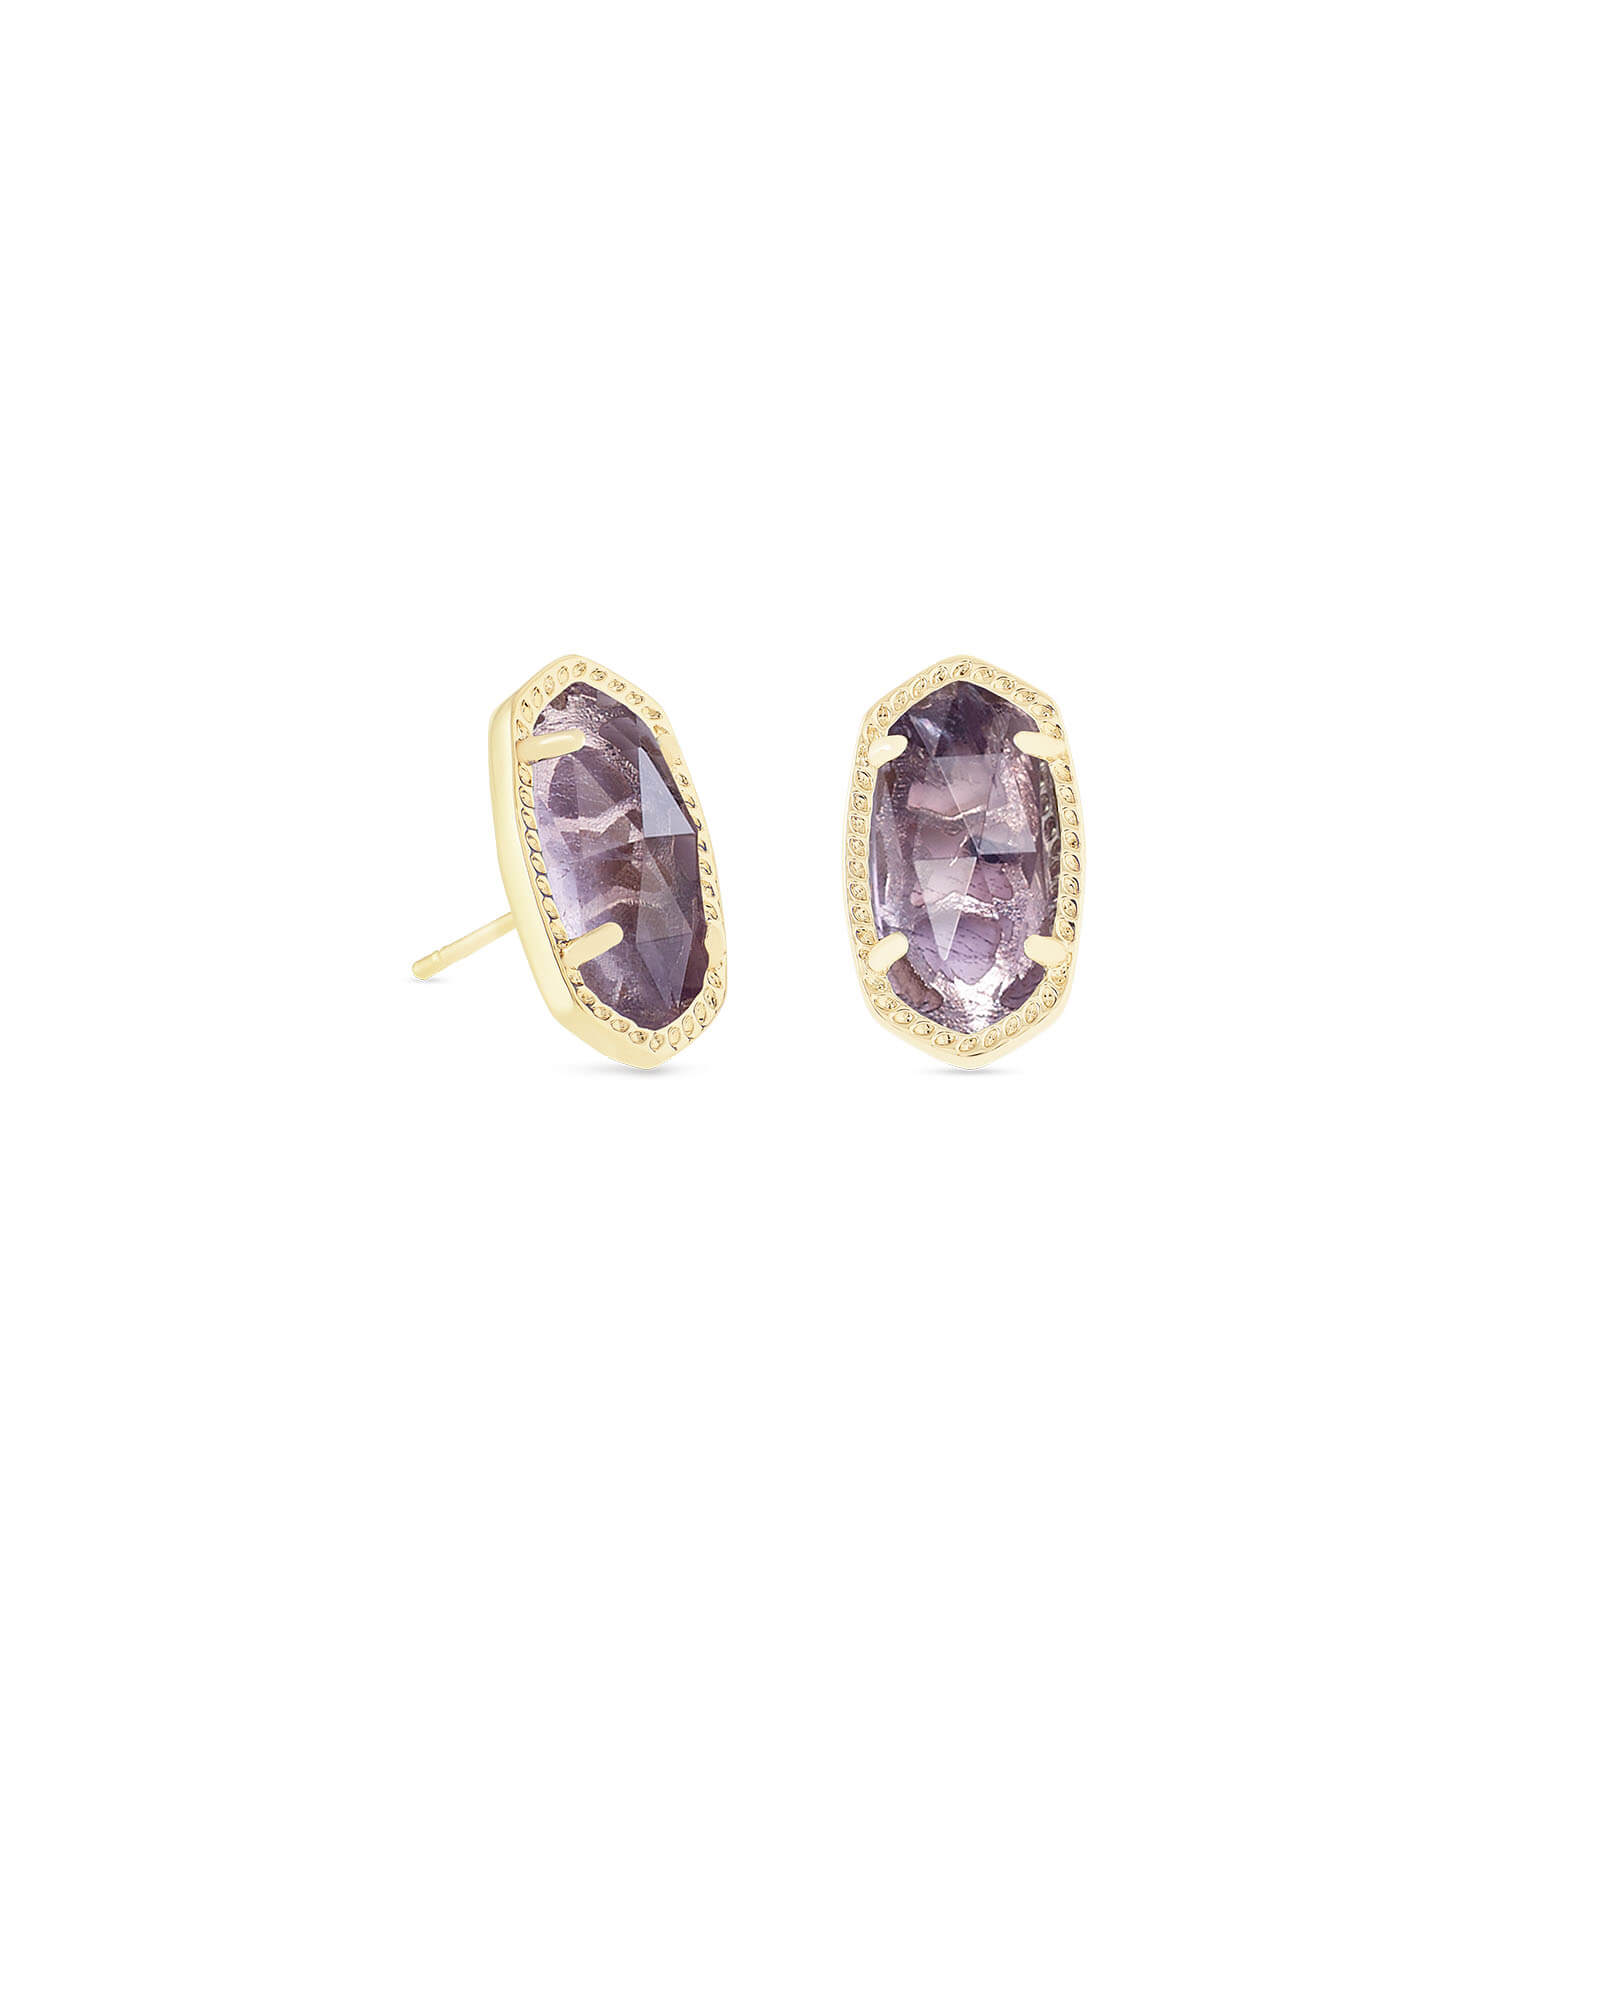 Ellie Gold Stud Earrings in Amethyst